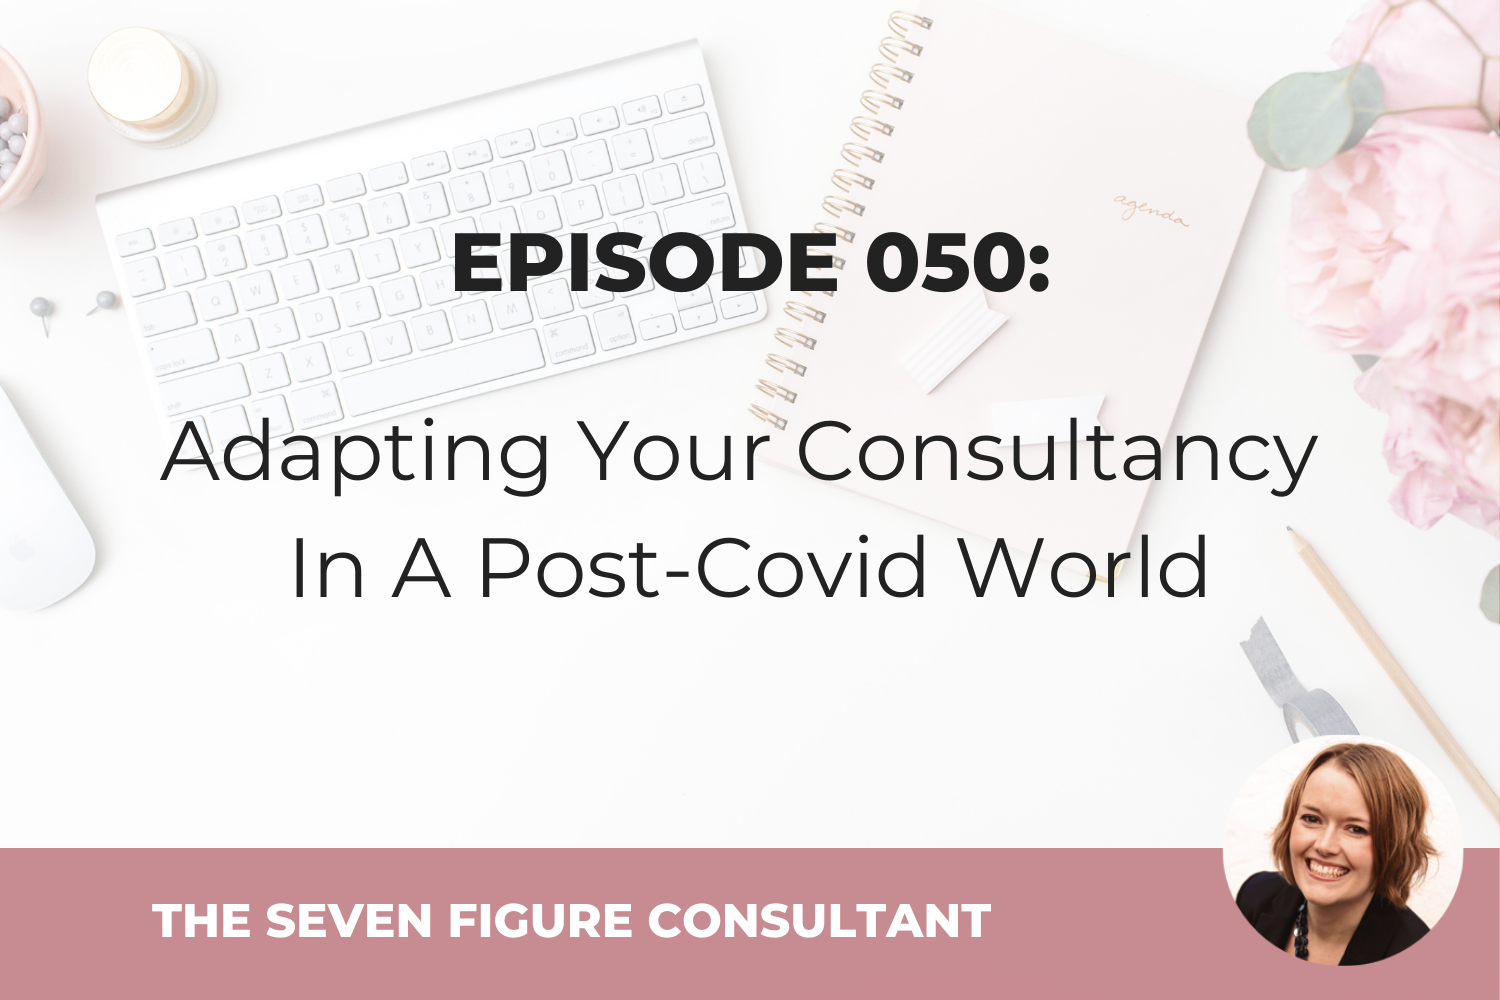 Episode 050: Adapting Your Consultancy In A Post-Covid World